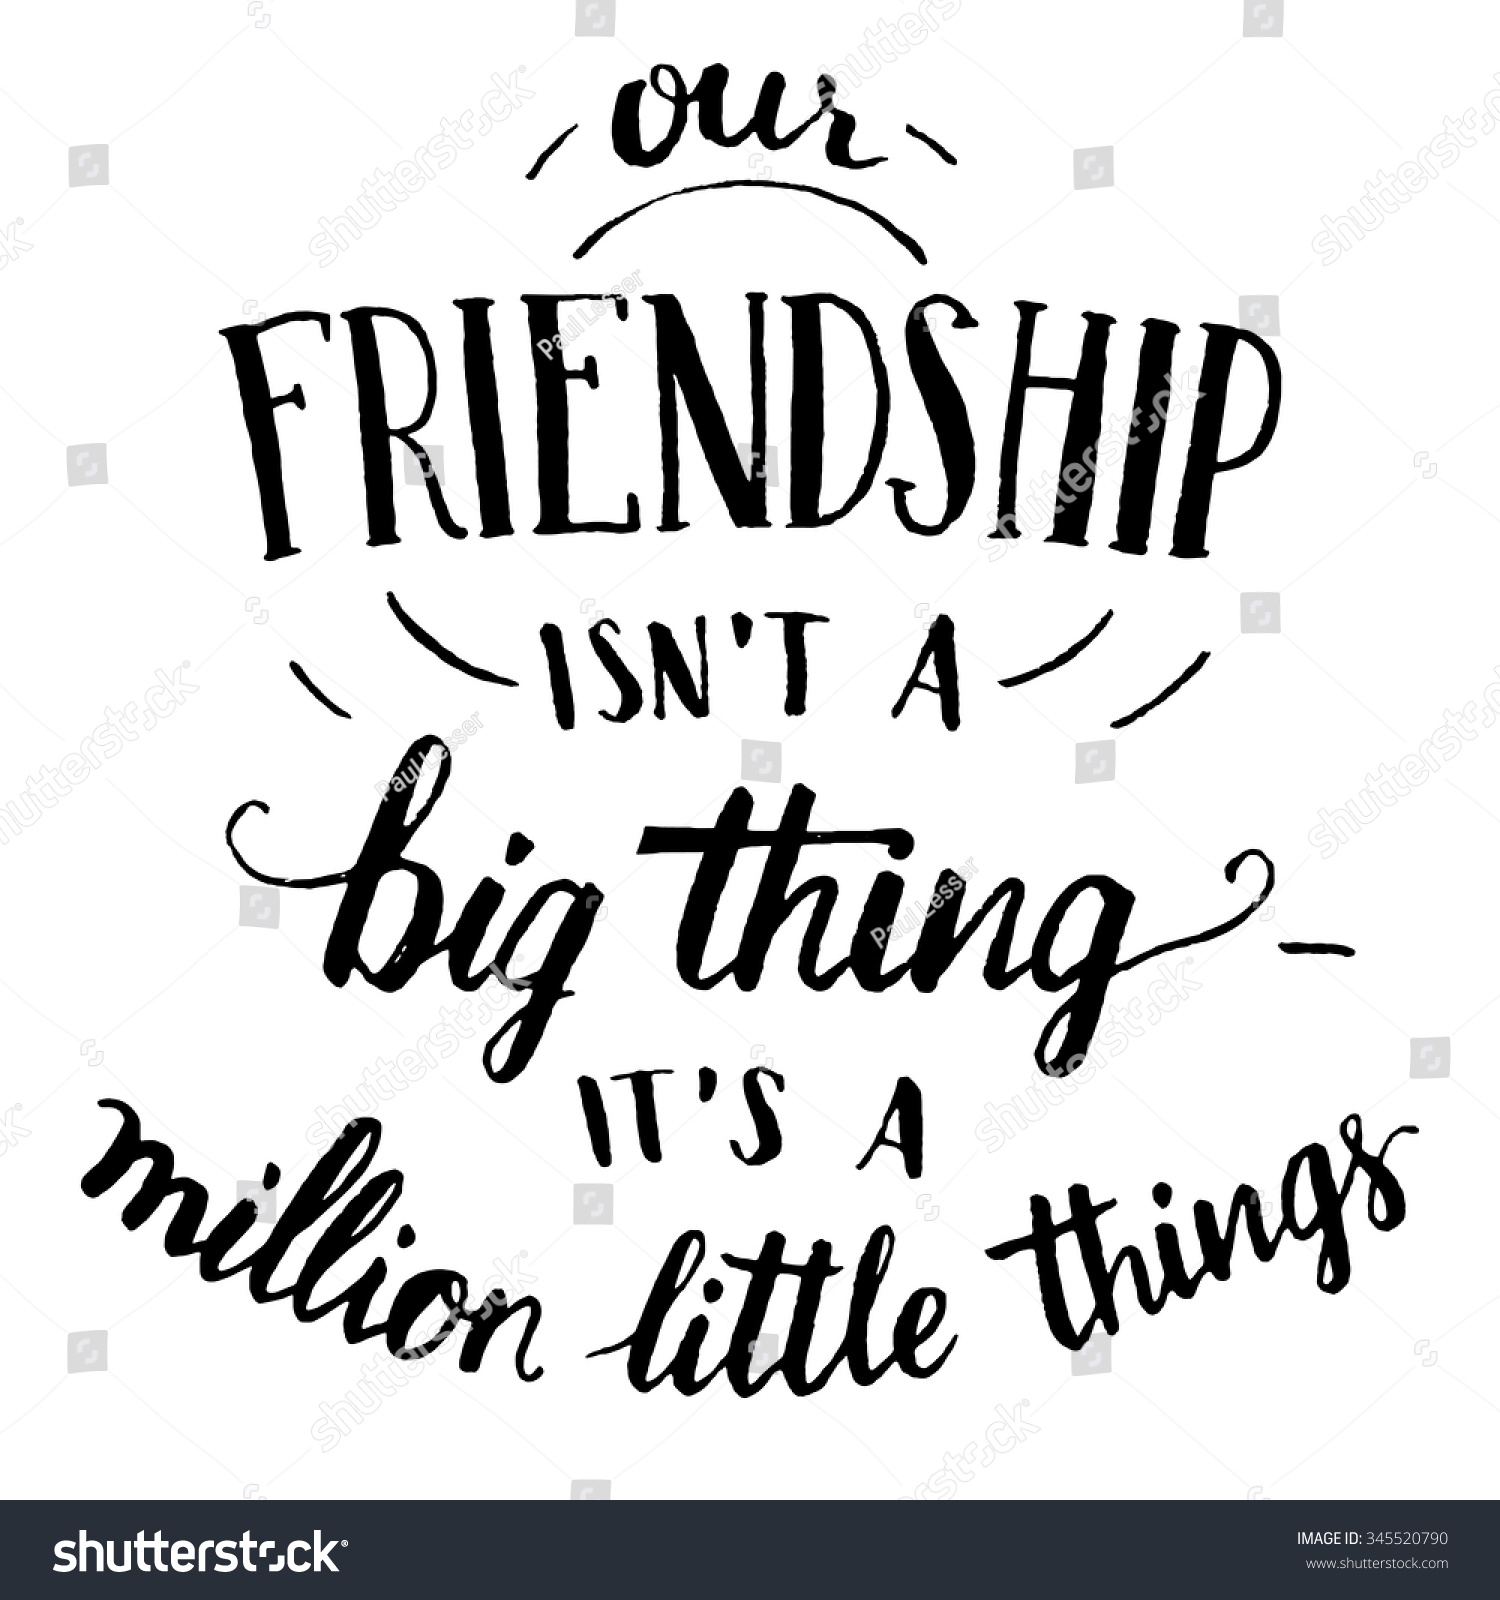 Our Friendship Isnt Big Thing Million Stock Vector 345520790 - Shutterstock